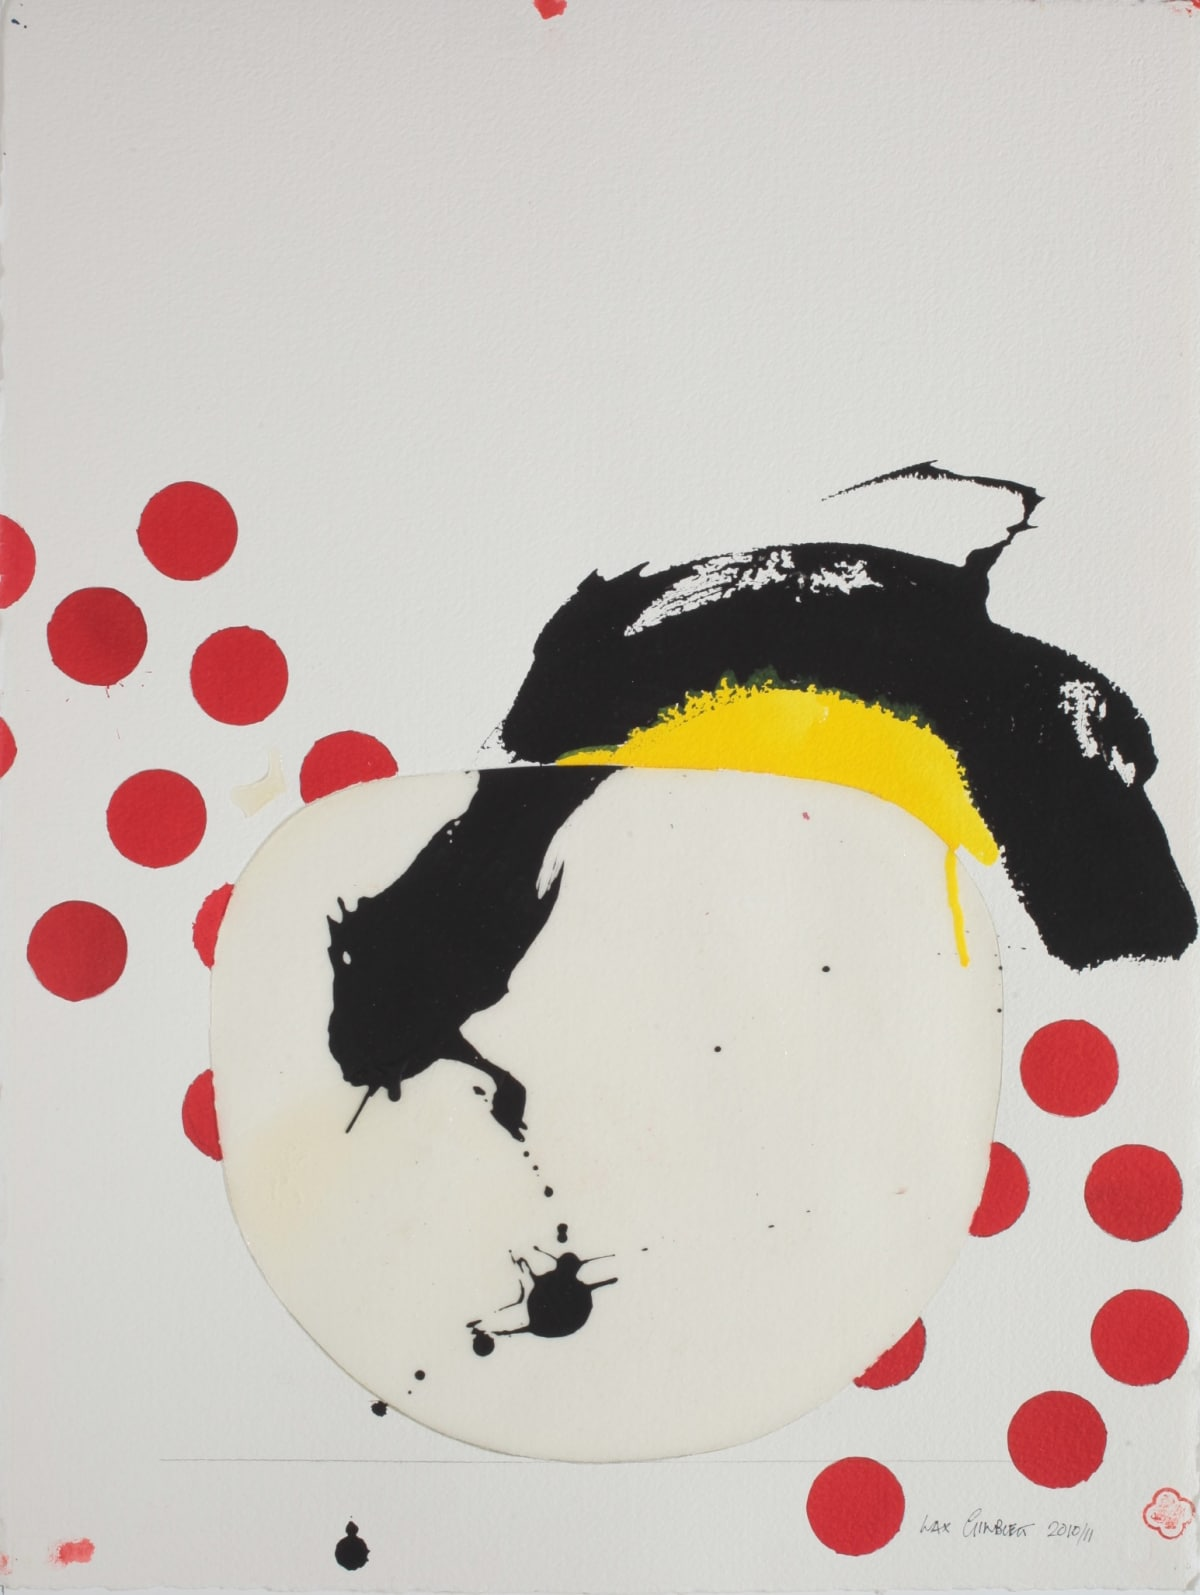 Max GIMBLETT Afternoon in Barcelona, 2010 Mixed media on paper 30 x 23 in 76.2 x 58.4 cm